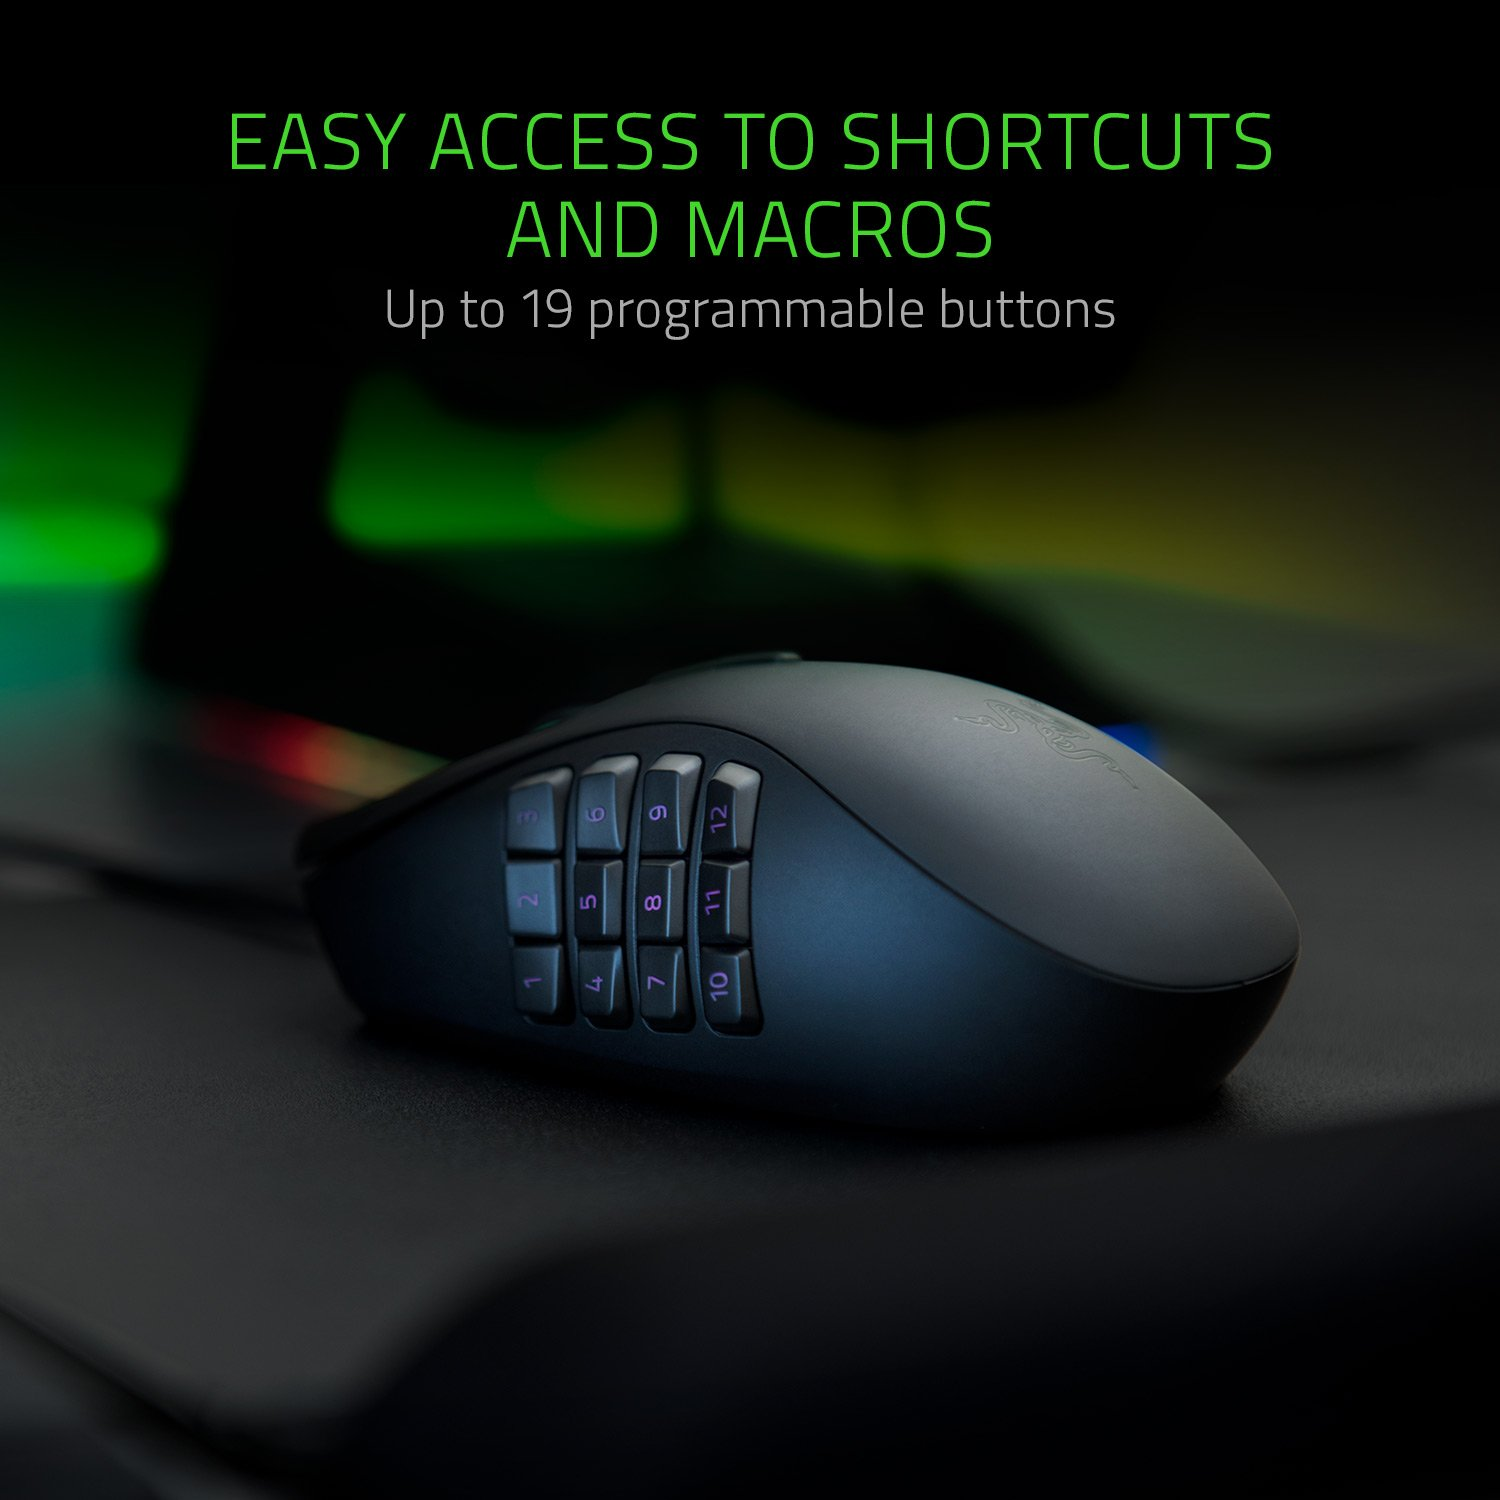 Razer Naga Trinity True 16 000 5g Optical Sensor 3 Blackwidow Chroma V2 Kraken 71 Hex Sphex Interchangeable Side Plates Enable Gaming Mouse Computers Accessories